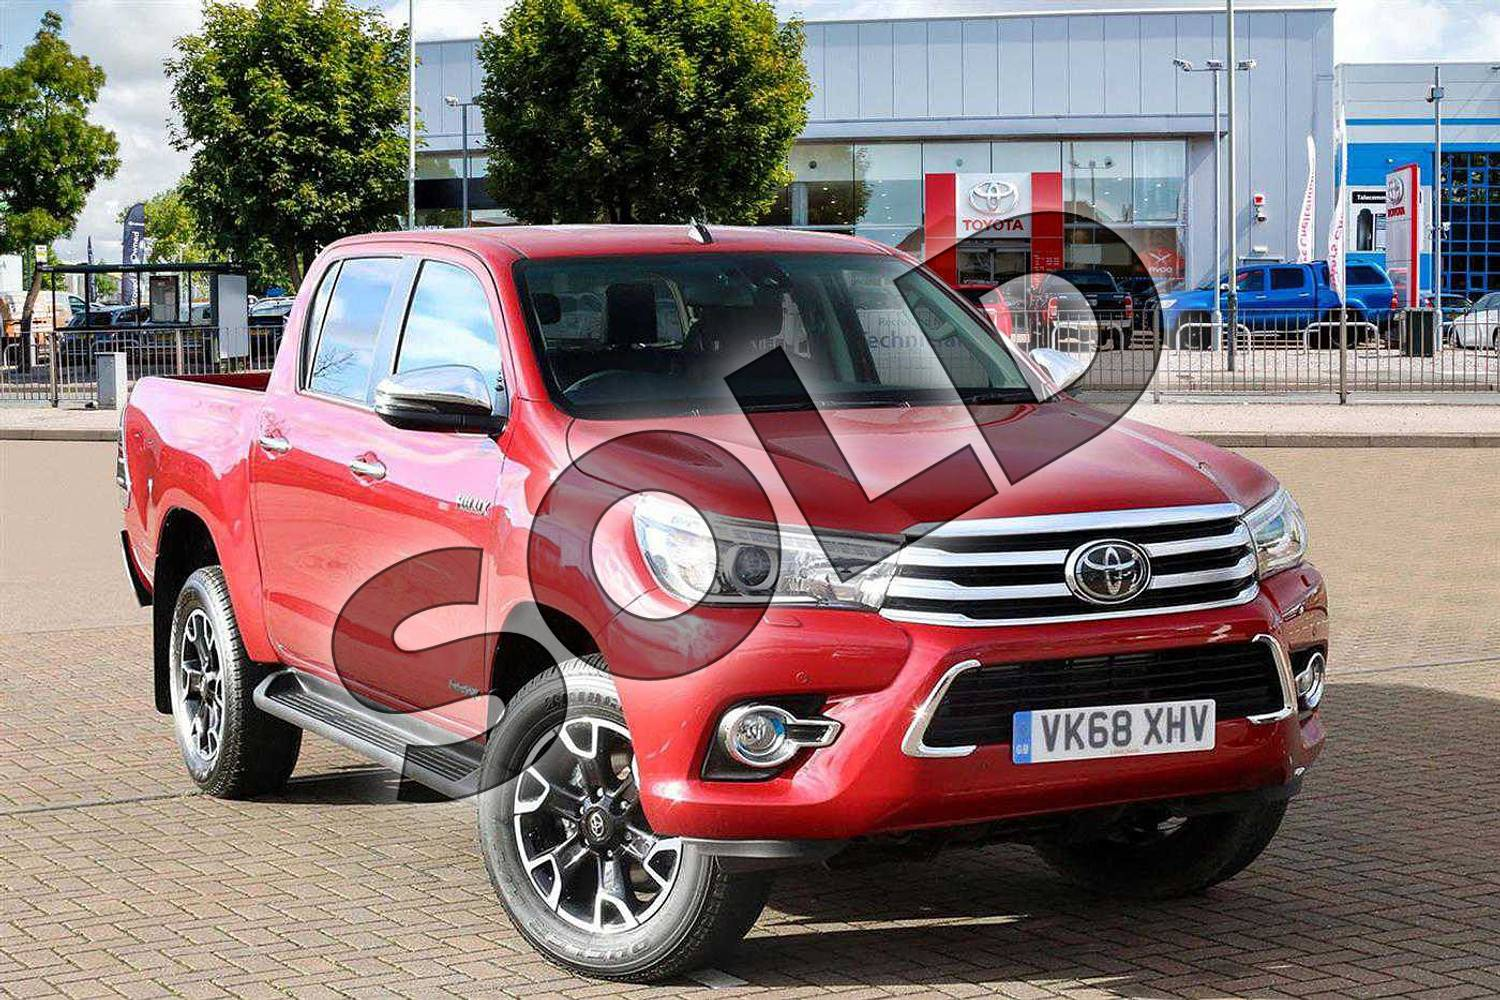 2018 Toyota Hilux Diesel Diesel Invincible X D/Cab Pick Up 2.4 D-4D Auto in Crimson Red at Listers Toyota Cheltenham